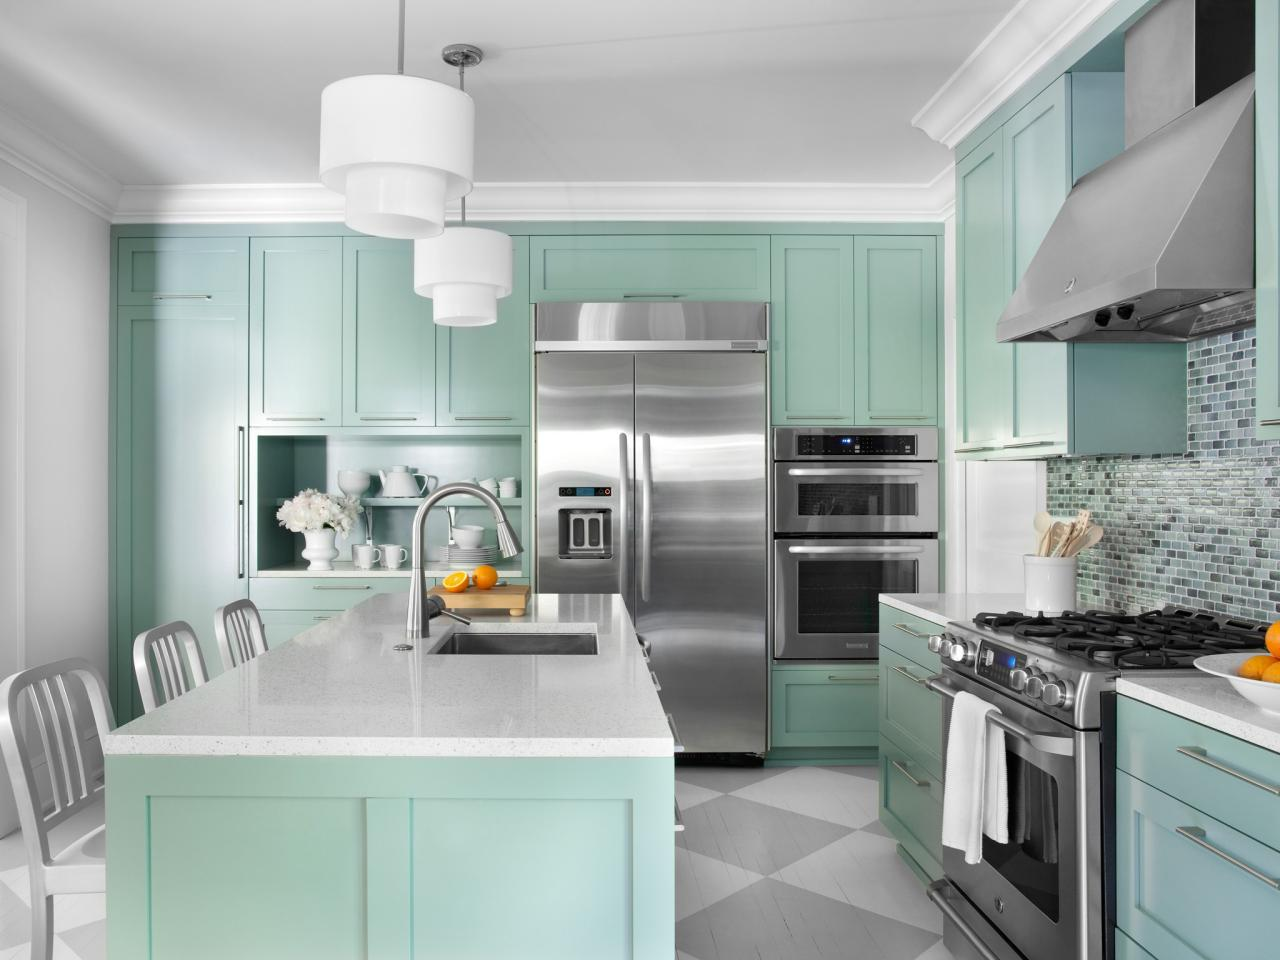 kitchen color ideas color ideas for painting kitchen cabinets FLACHAK